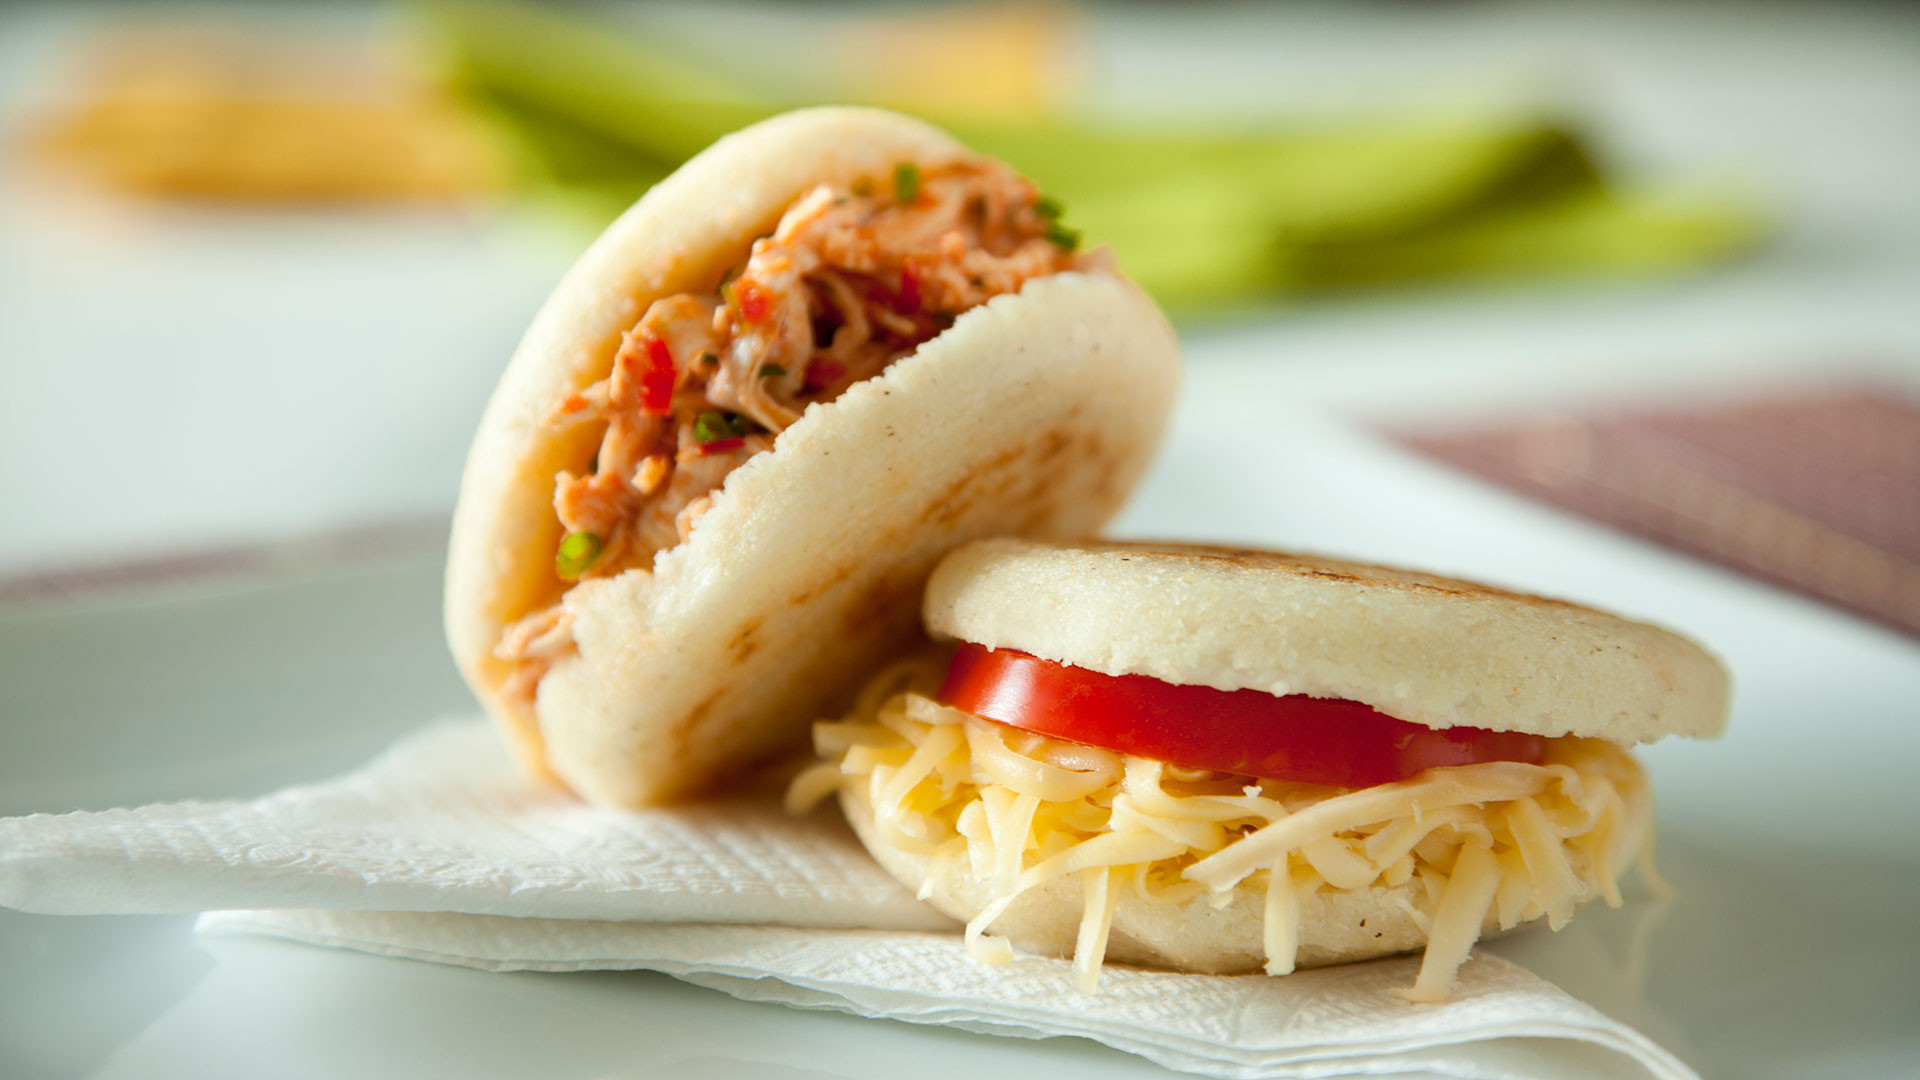 Arepas are a common breakfast in Colombia and Venezuela